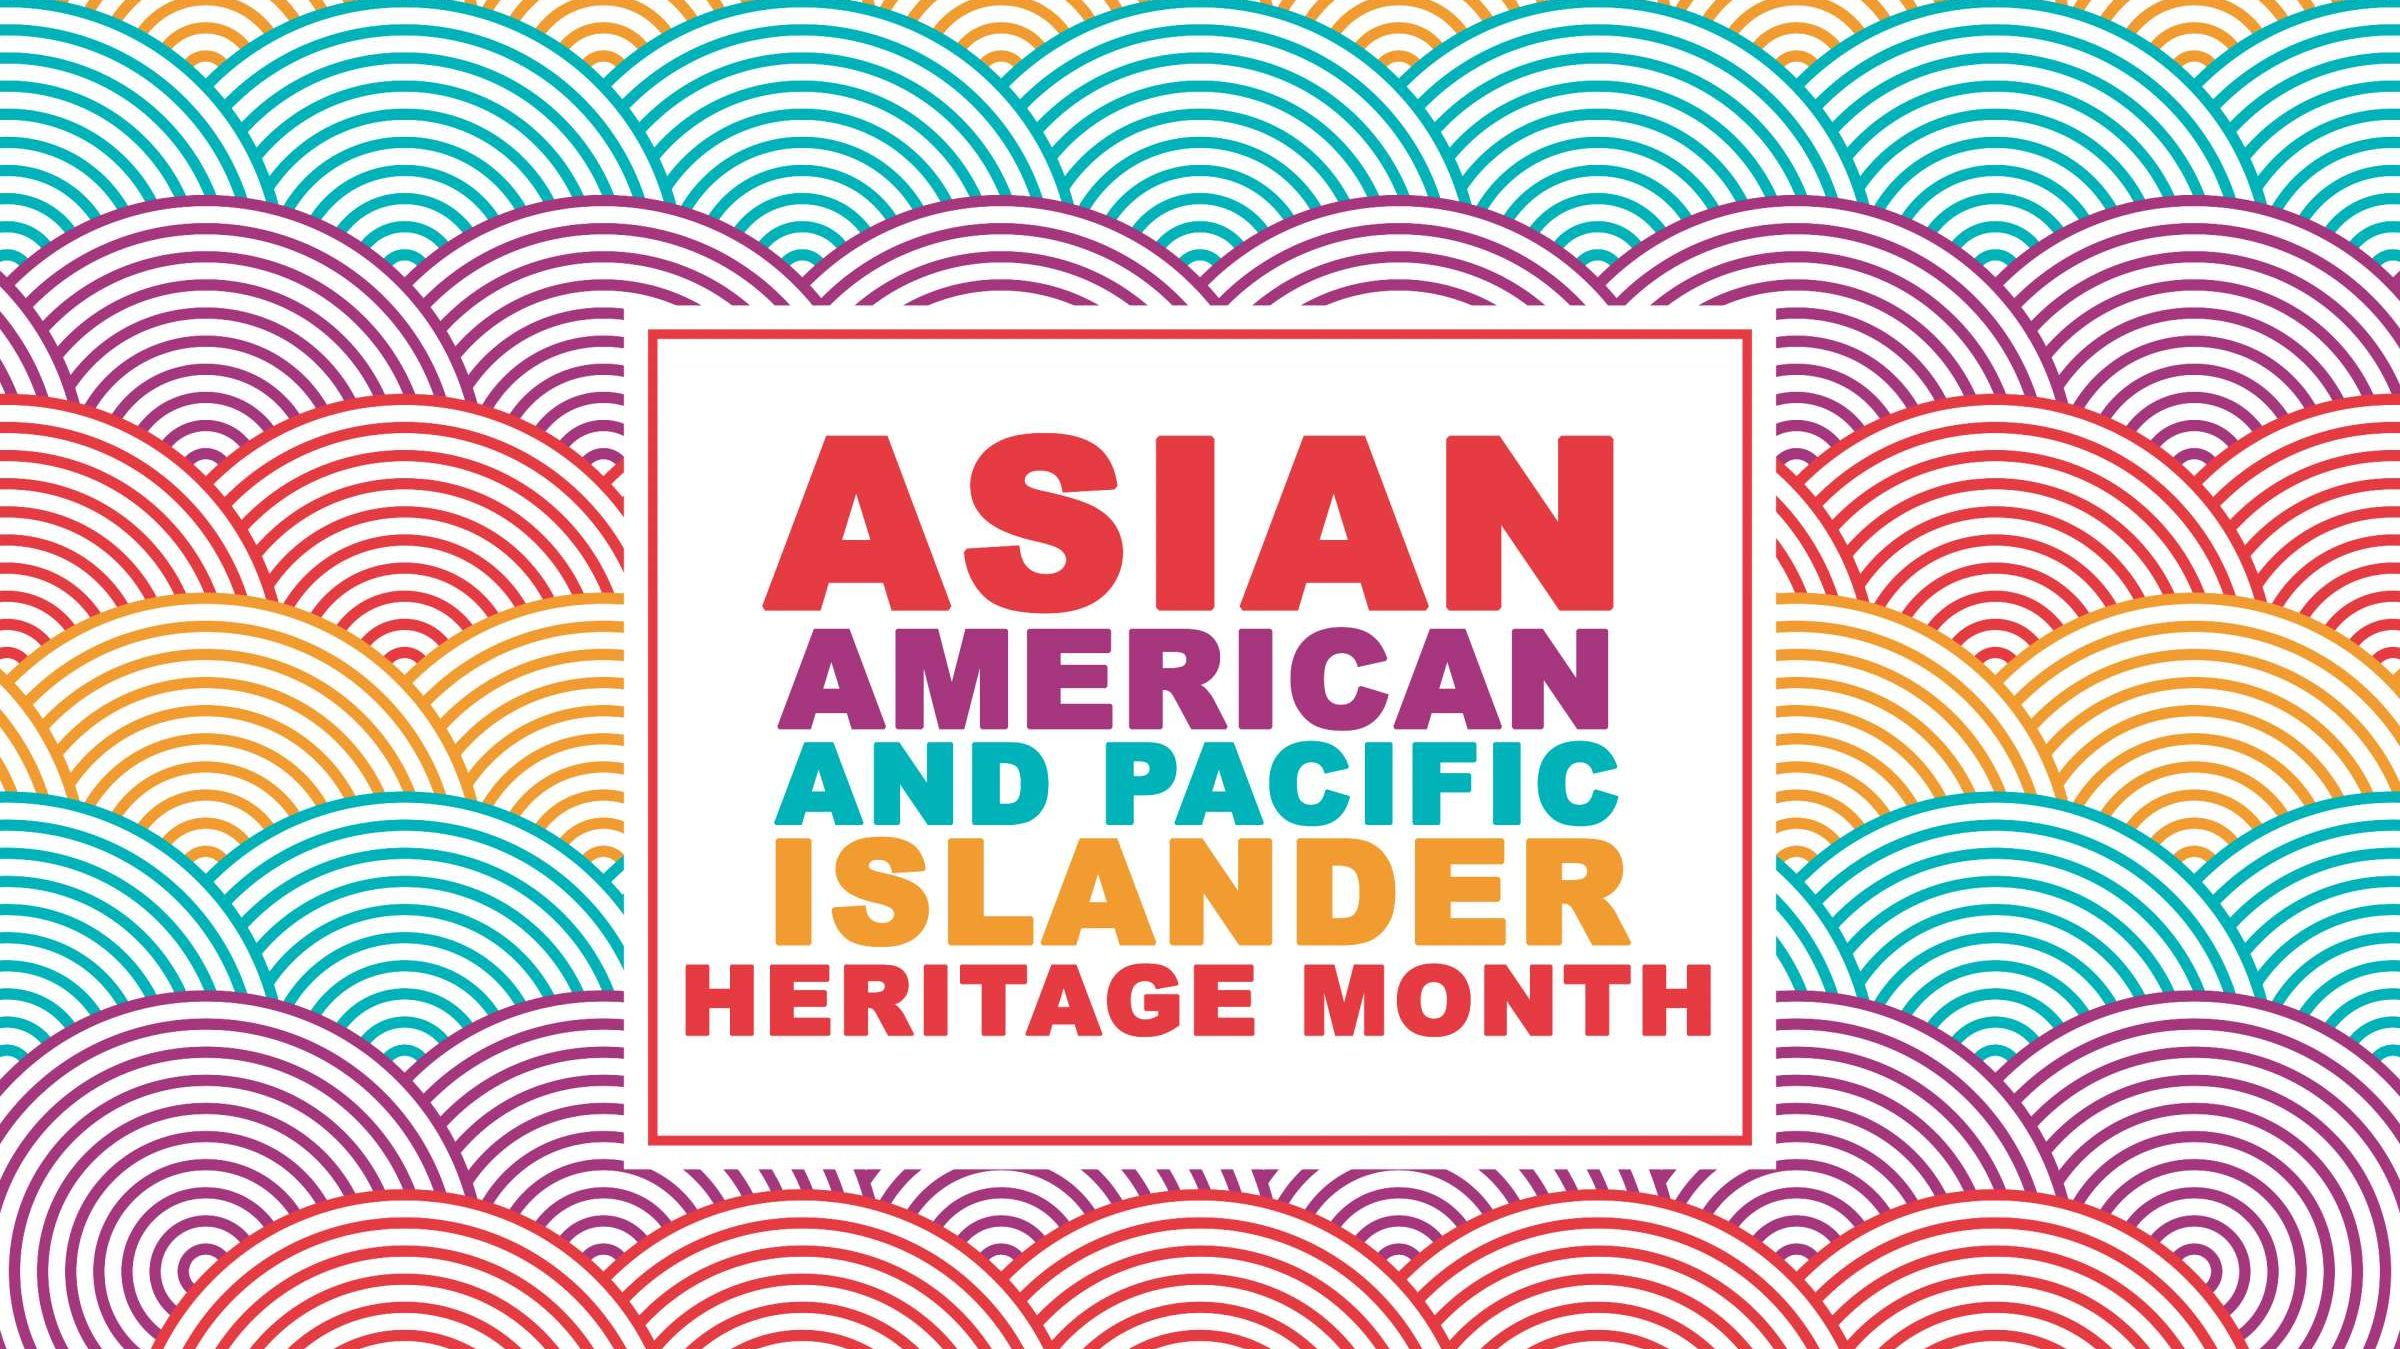 6 Facts About Asian American and Pacific Islander Heritage Month